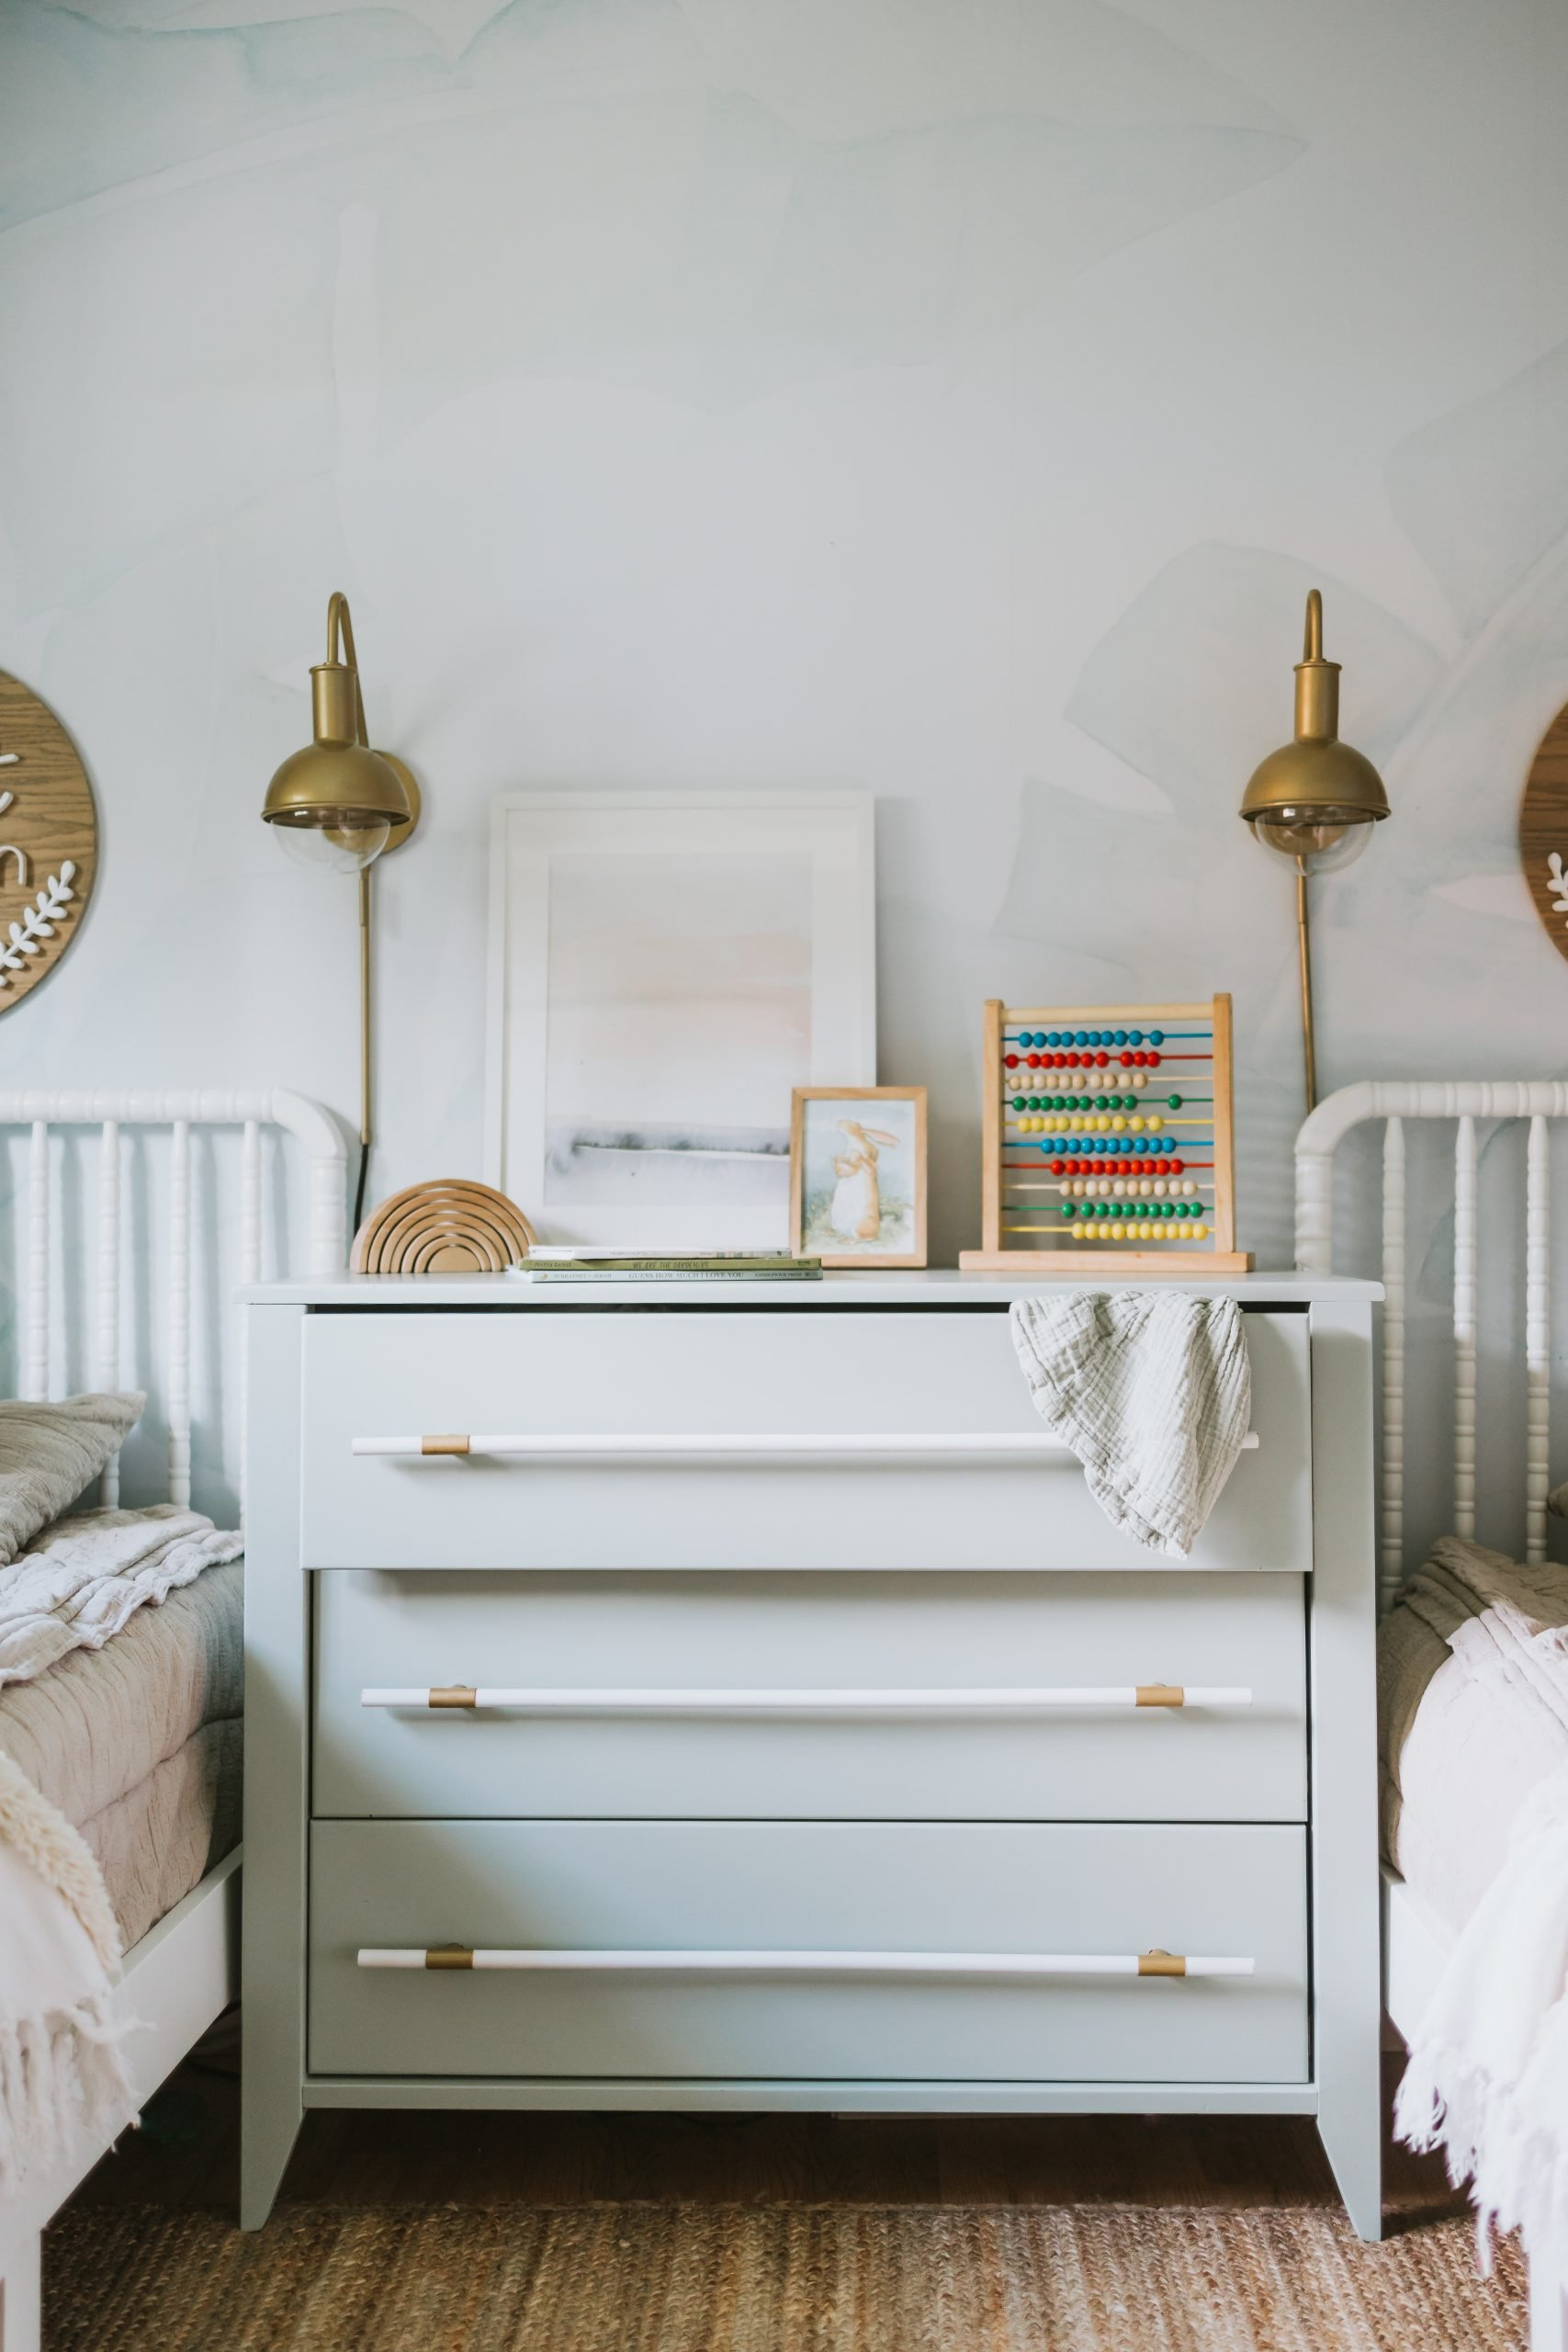 Dresser Makeover With Dowel Handles. How We Did This Dresser For Under 30 Dollars and It Looks Like It's Out Of A Pottery Barn Magazine!